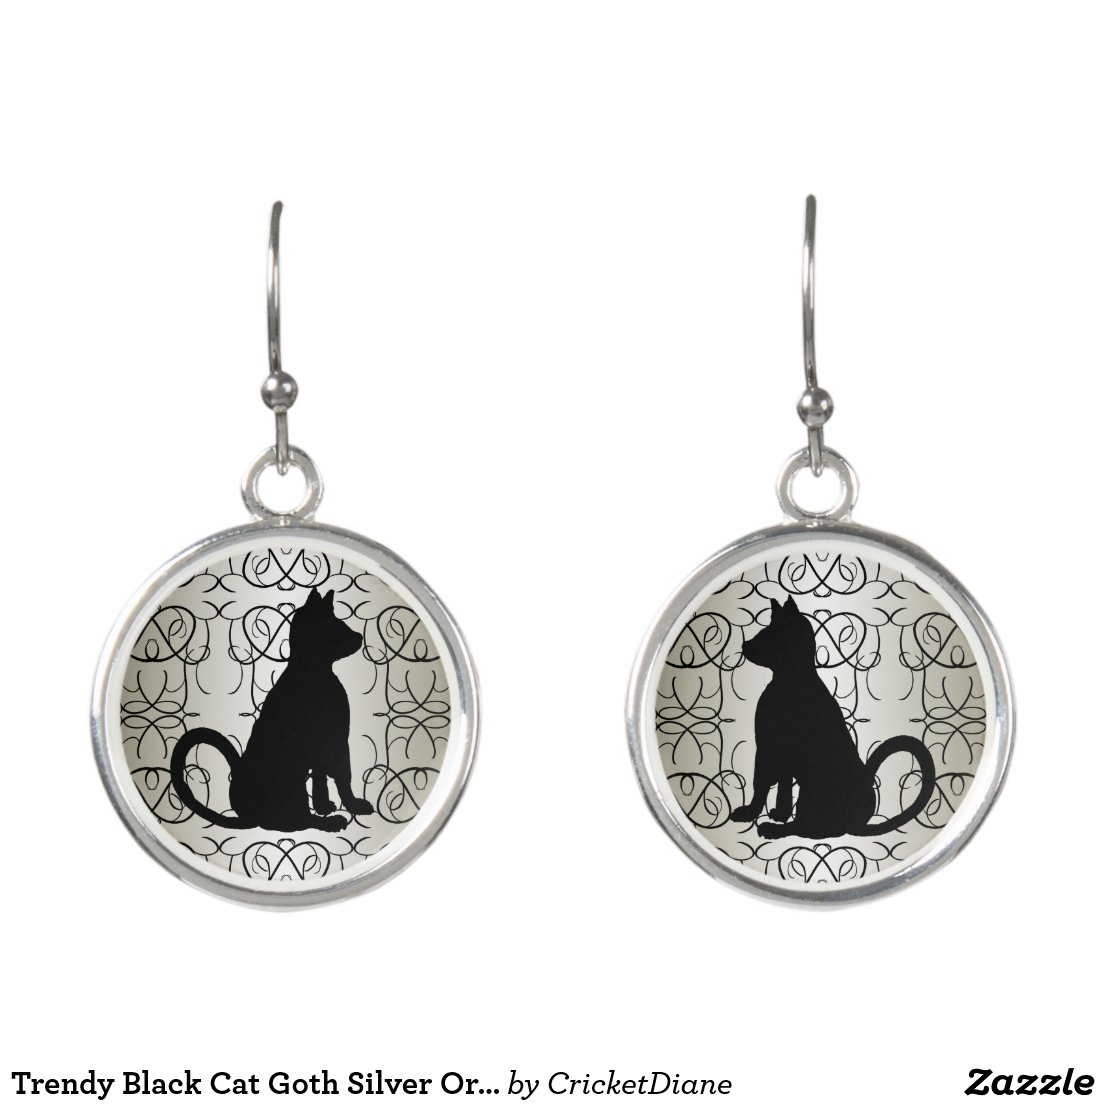 Trendy Black Cat Goth Silver Ornate CricketDiane Earrings